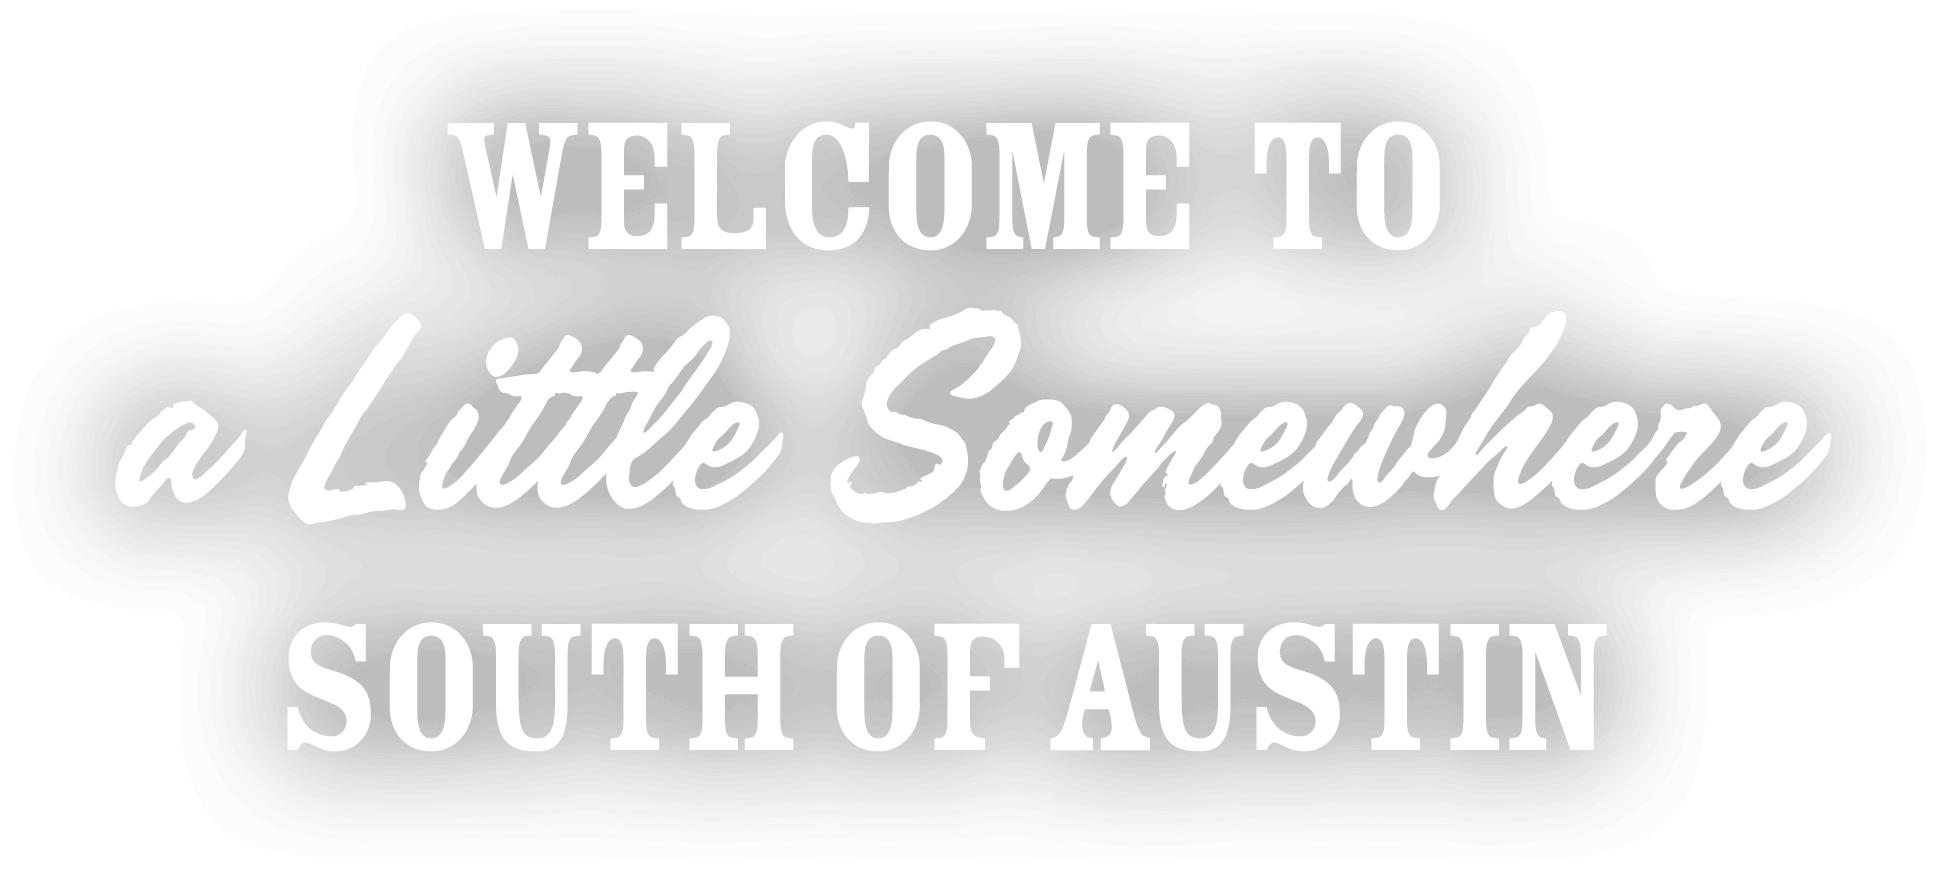 Welcome to somewhere a little south of Austin